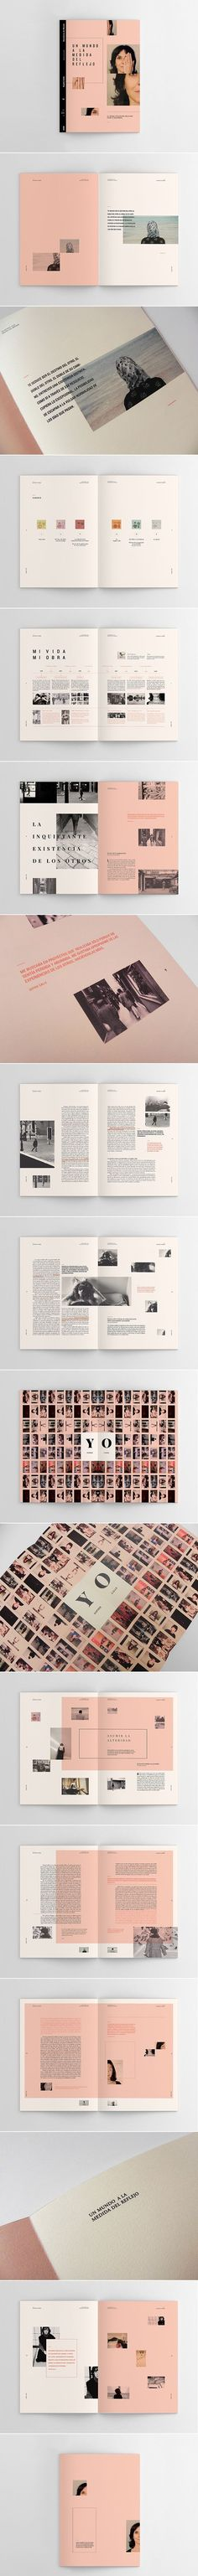 Cover & Layout / Sophie Calle - Hacedores de Mundo on Behance: